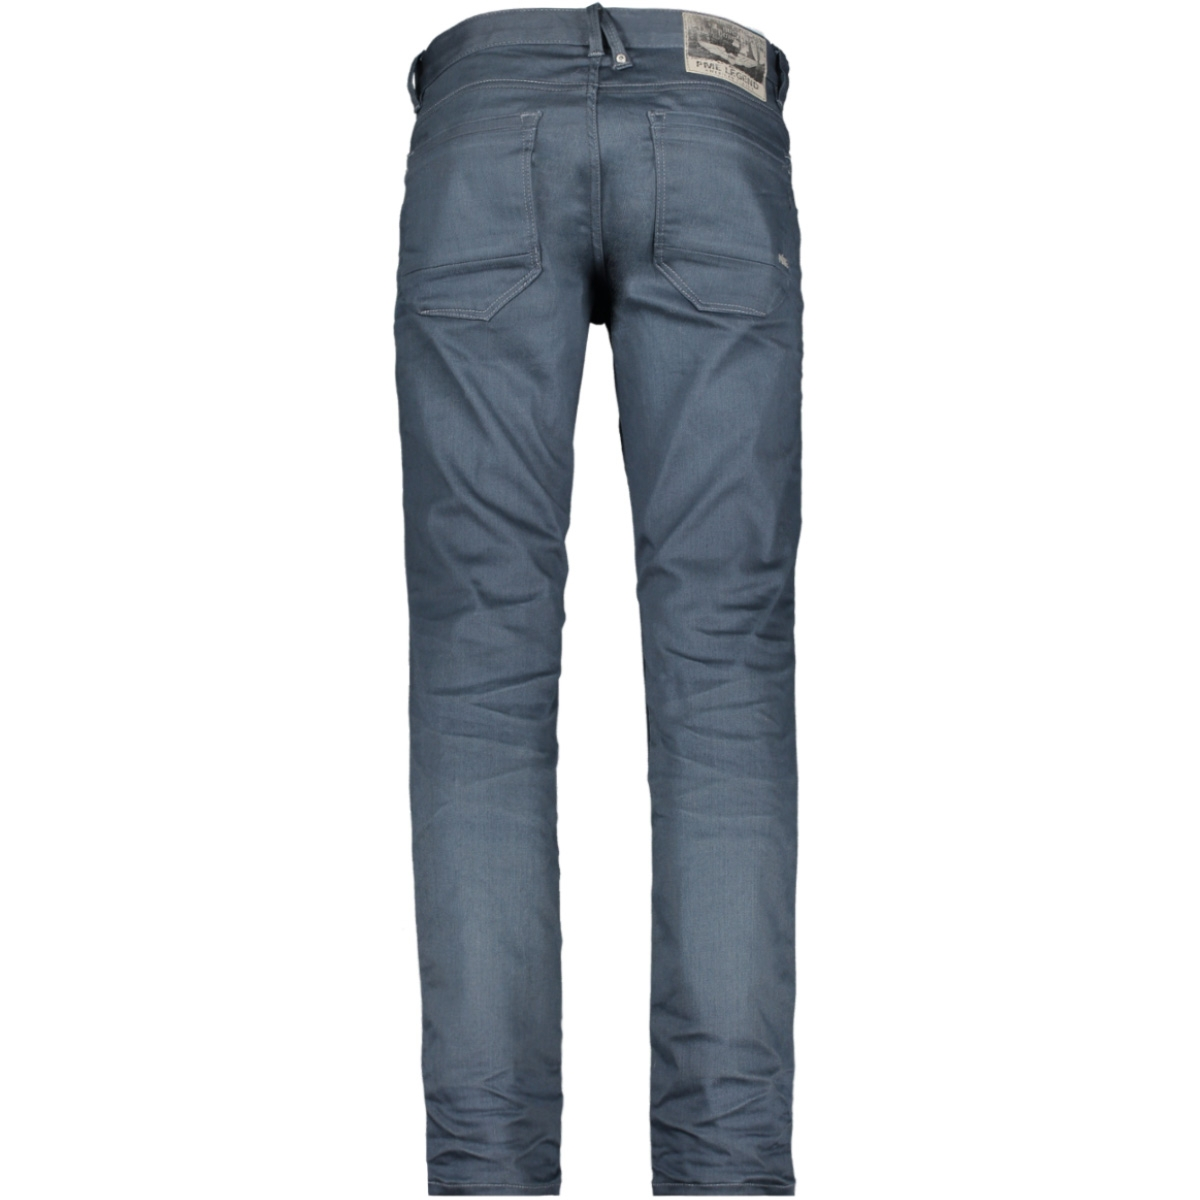 nightflight ptr196121 pme legend jeans 9116